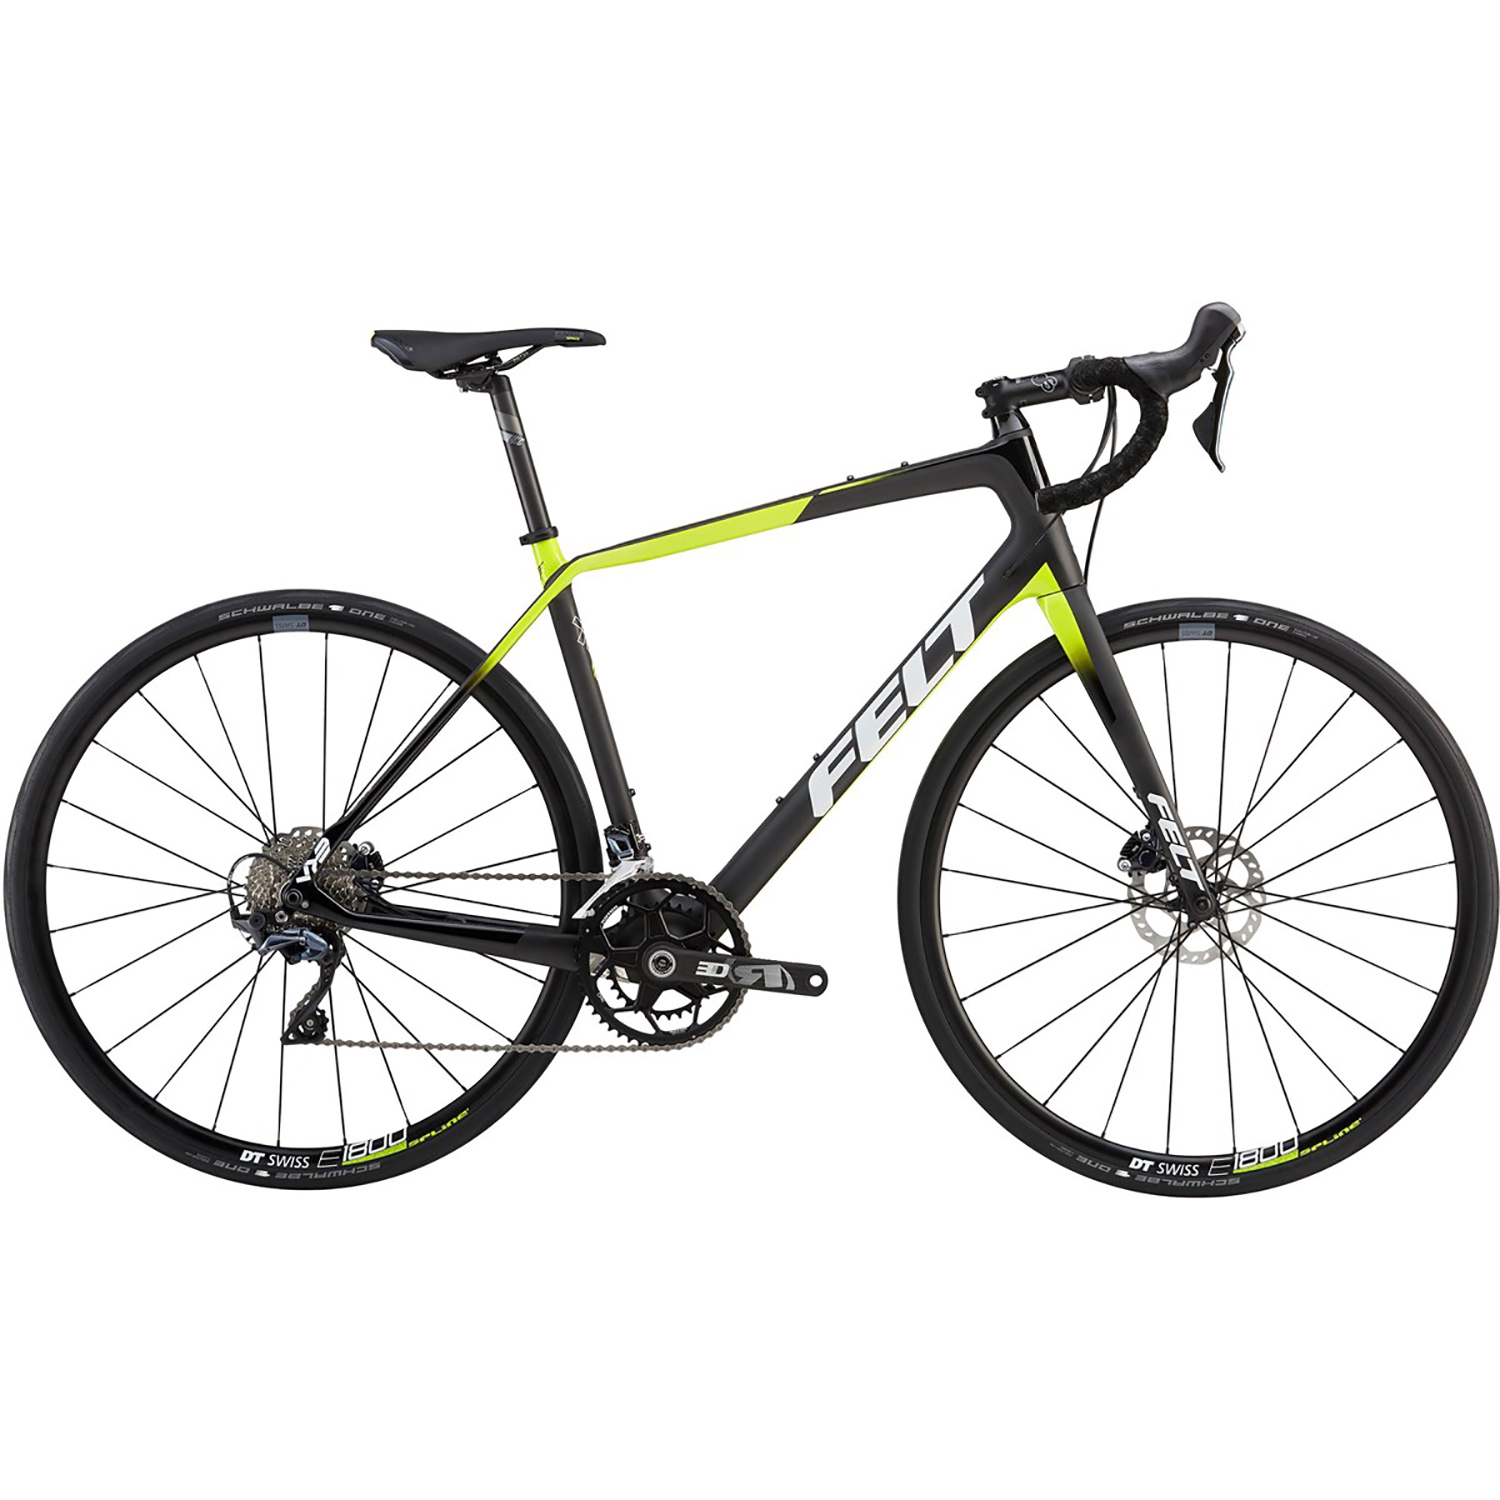 Felt VR3 Disc Carbon Road Bike - 2018